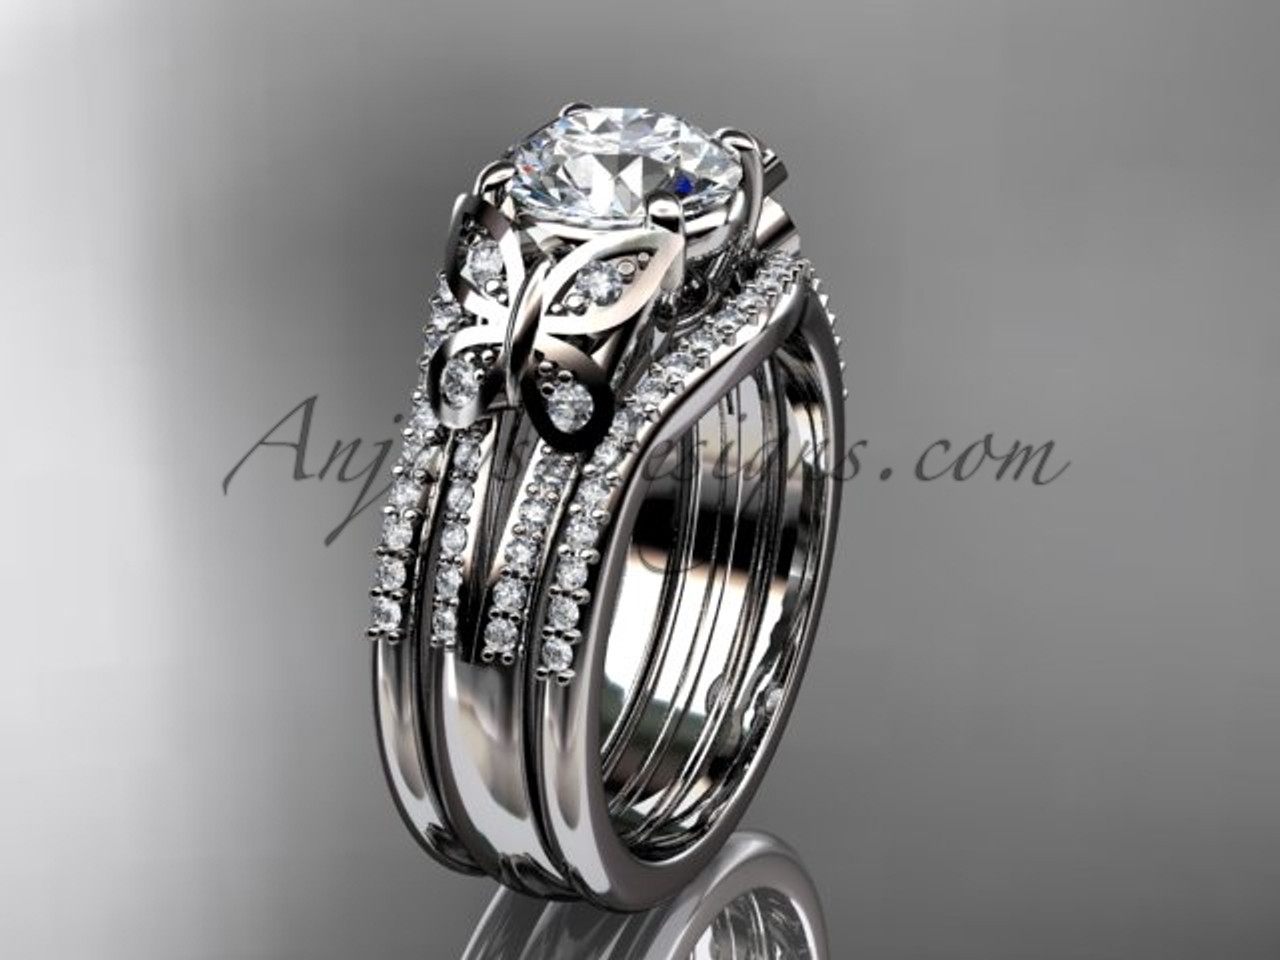 engagement rings double band butterfly rings white gold unique wedding ring set adlr514s - Double Band Wedding Ring